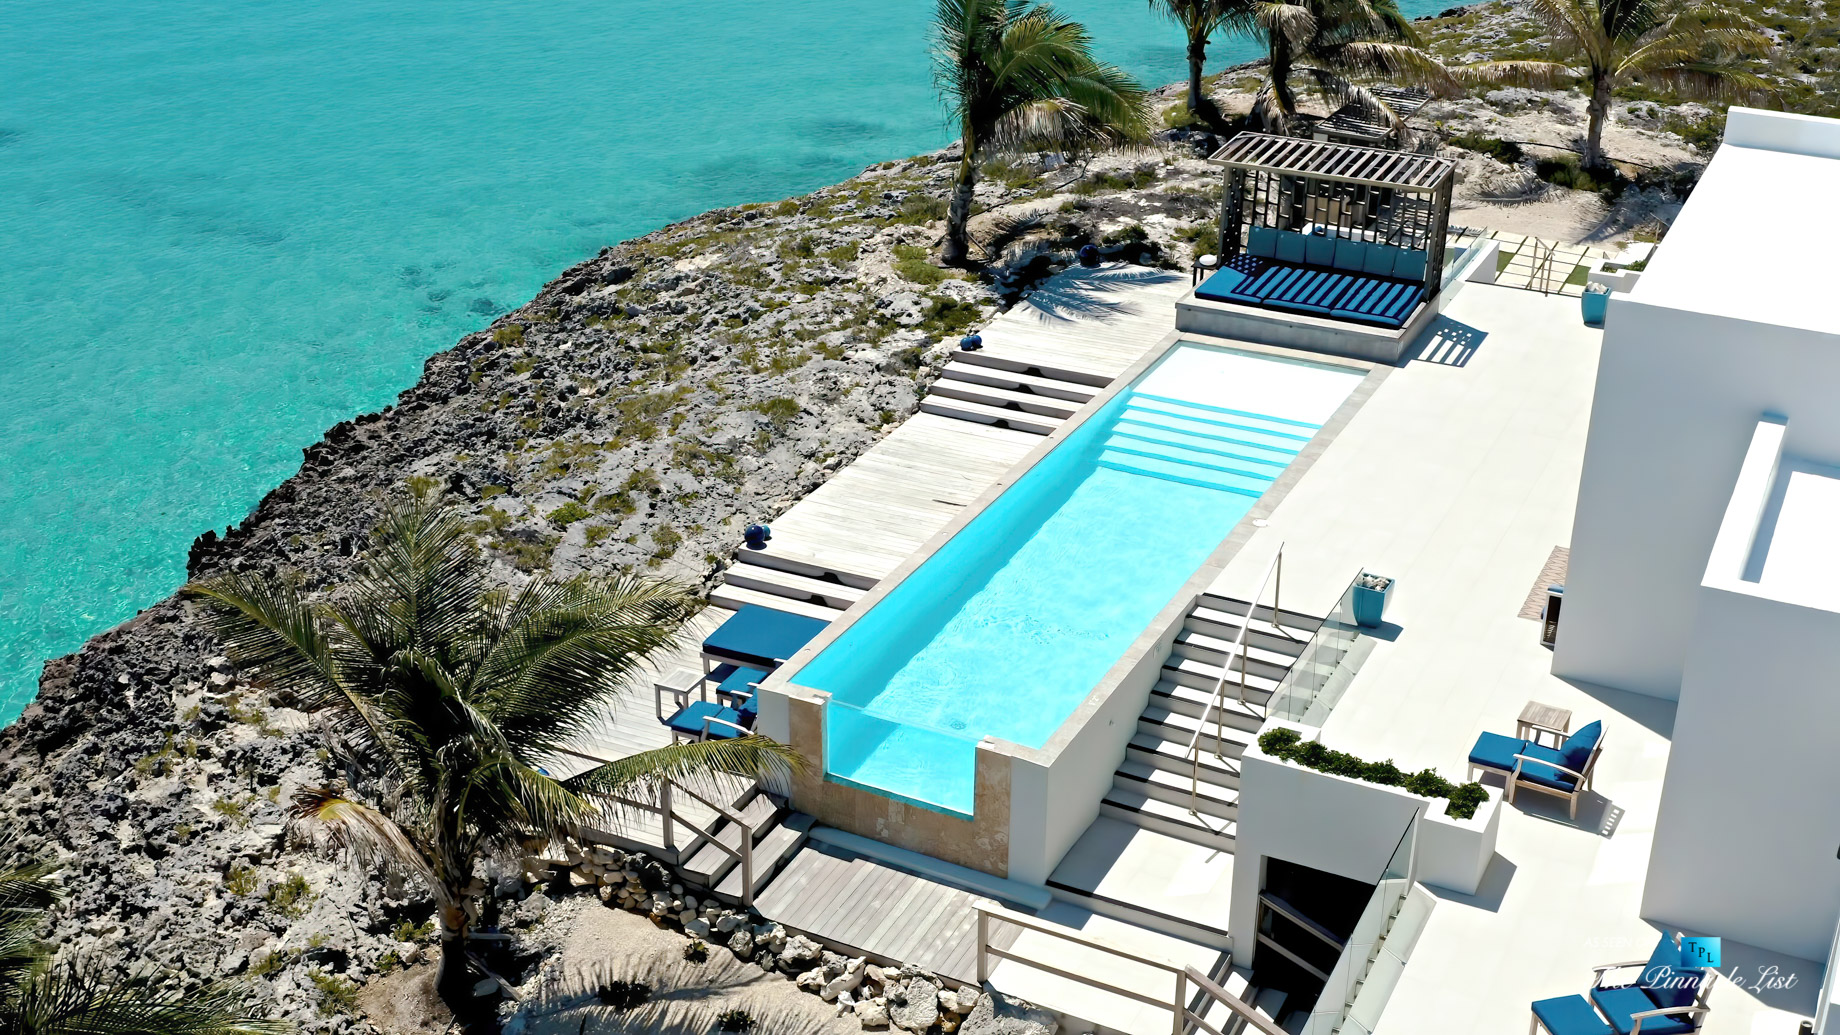 Tip of the Tail Luxury Villa – Providenciales, Turks and Caicos Islands – Infinity Pool Aerial View